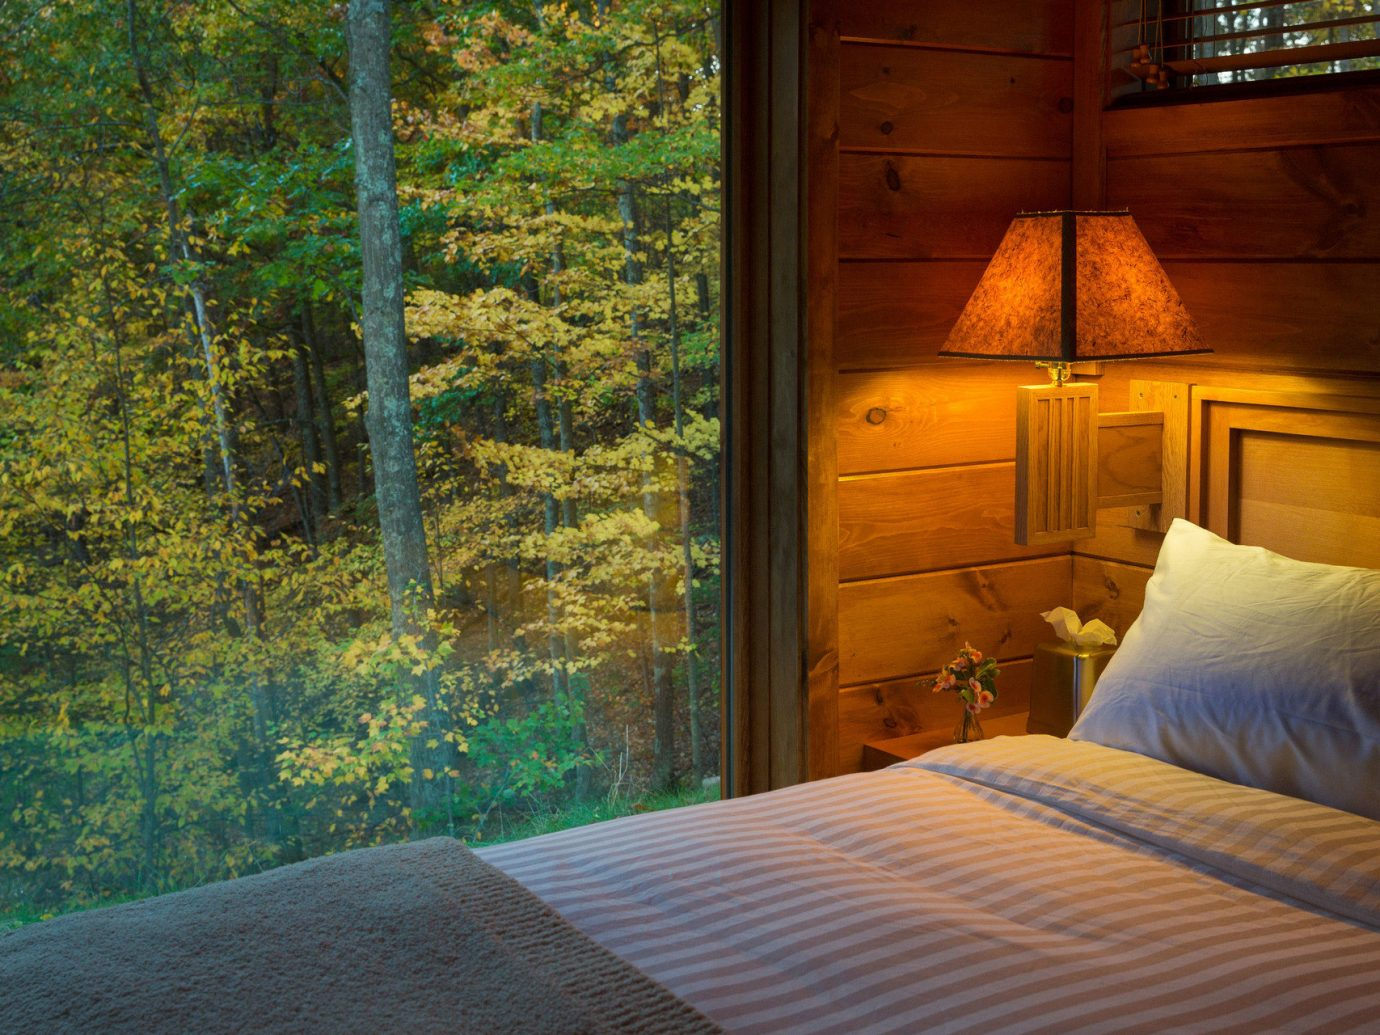 ambient lighting bed Bedroom Cabin calm charming cozy Forest isolation Lodge Luxury Nature Outdoors remote Rustic serene trees Trip Ideas view warm window woods indoor season estate sunlight cottage pillow autumn